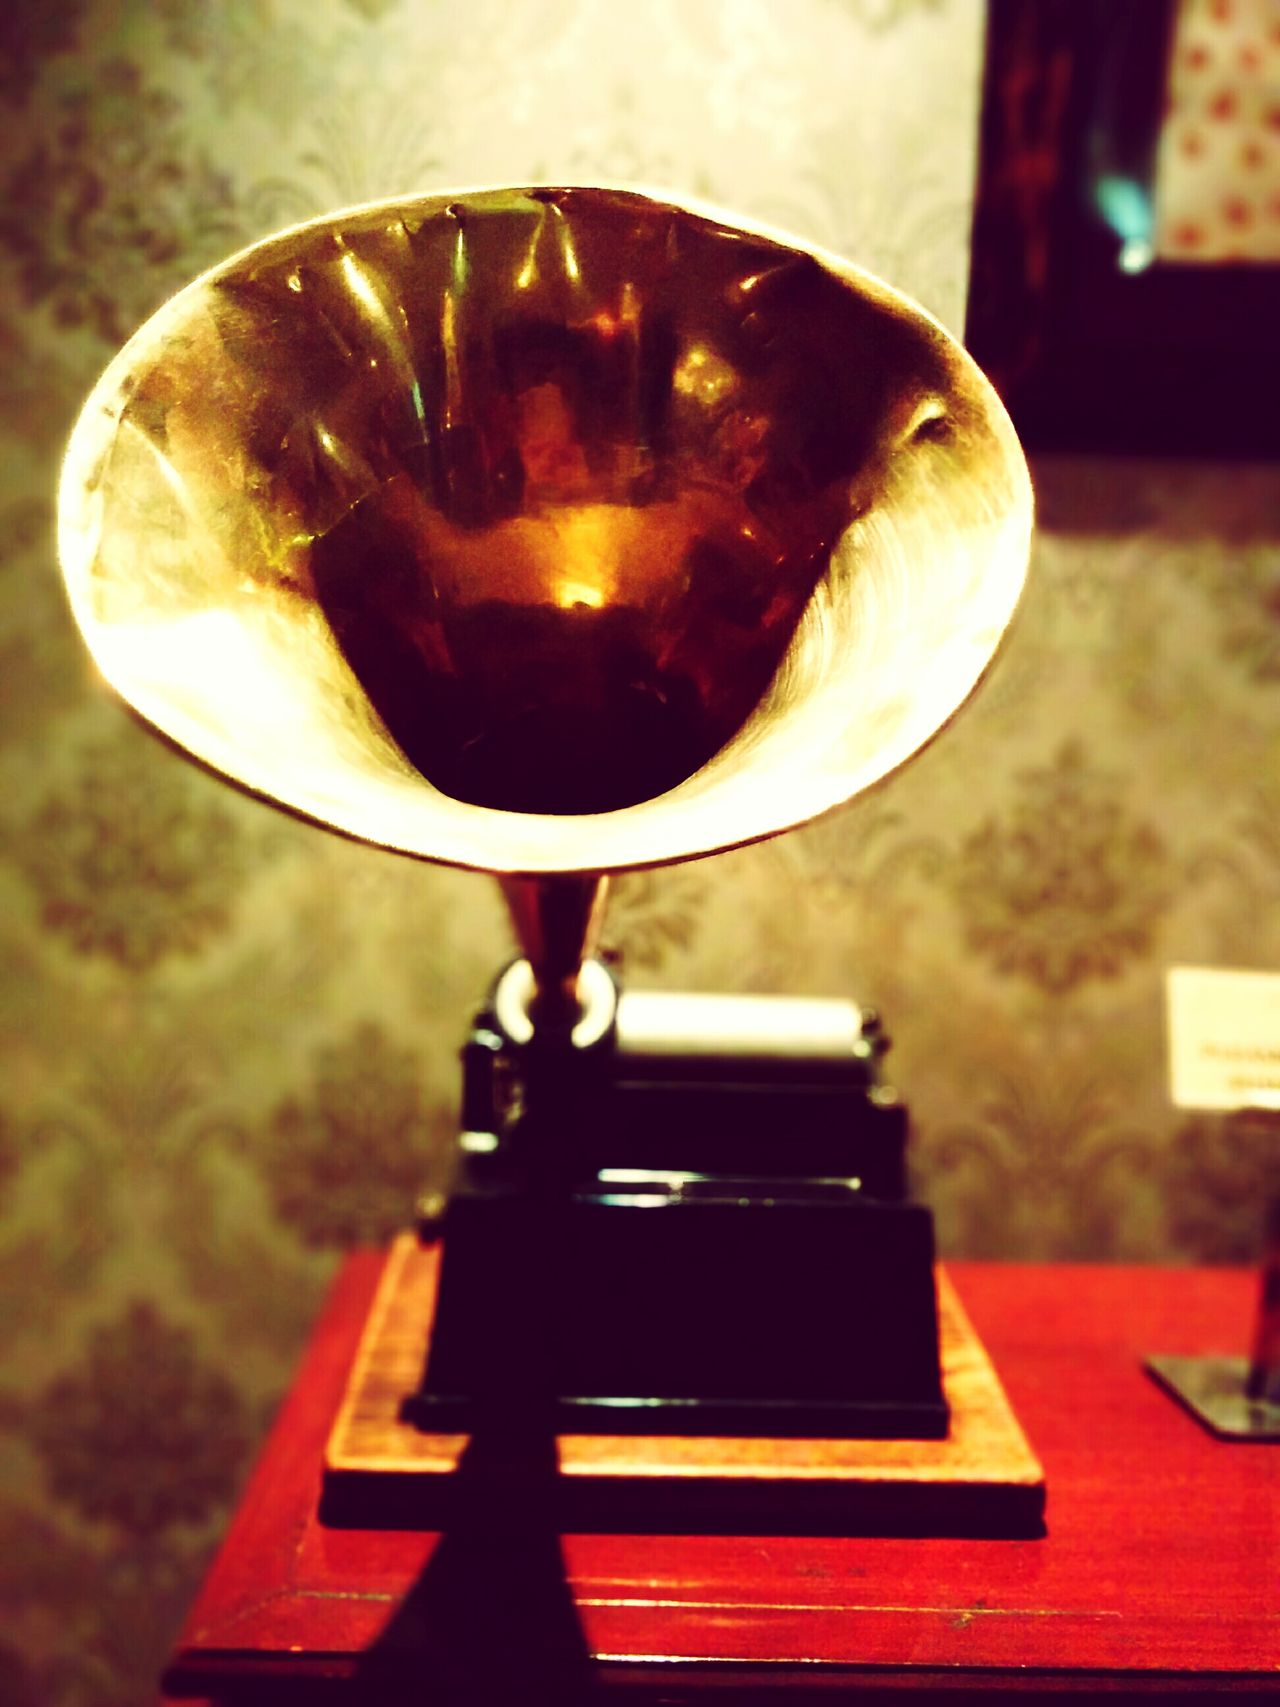 Music Gramophone Arts Culture And Entertainment Musical Instrument Performance Vintage Photo EyeEmNewInHere Flying High EyeEmNewHere High Angle View Close-up